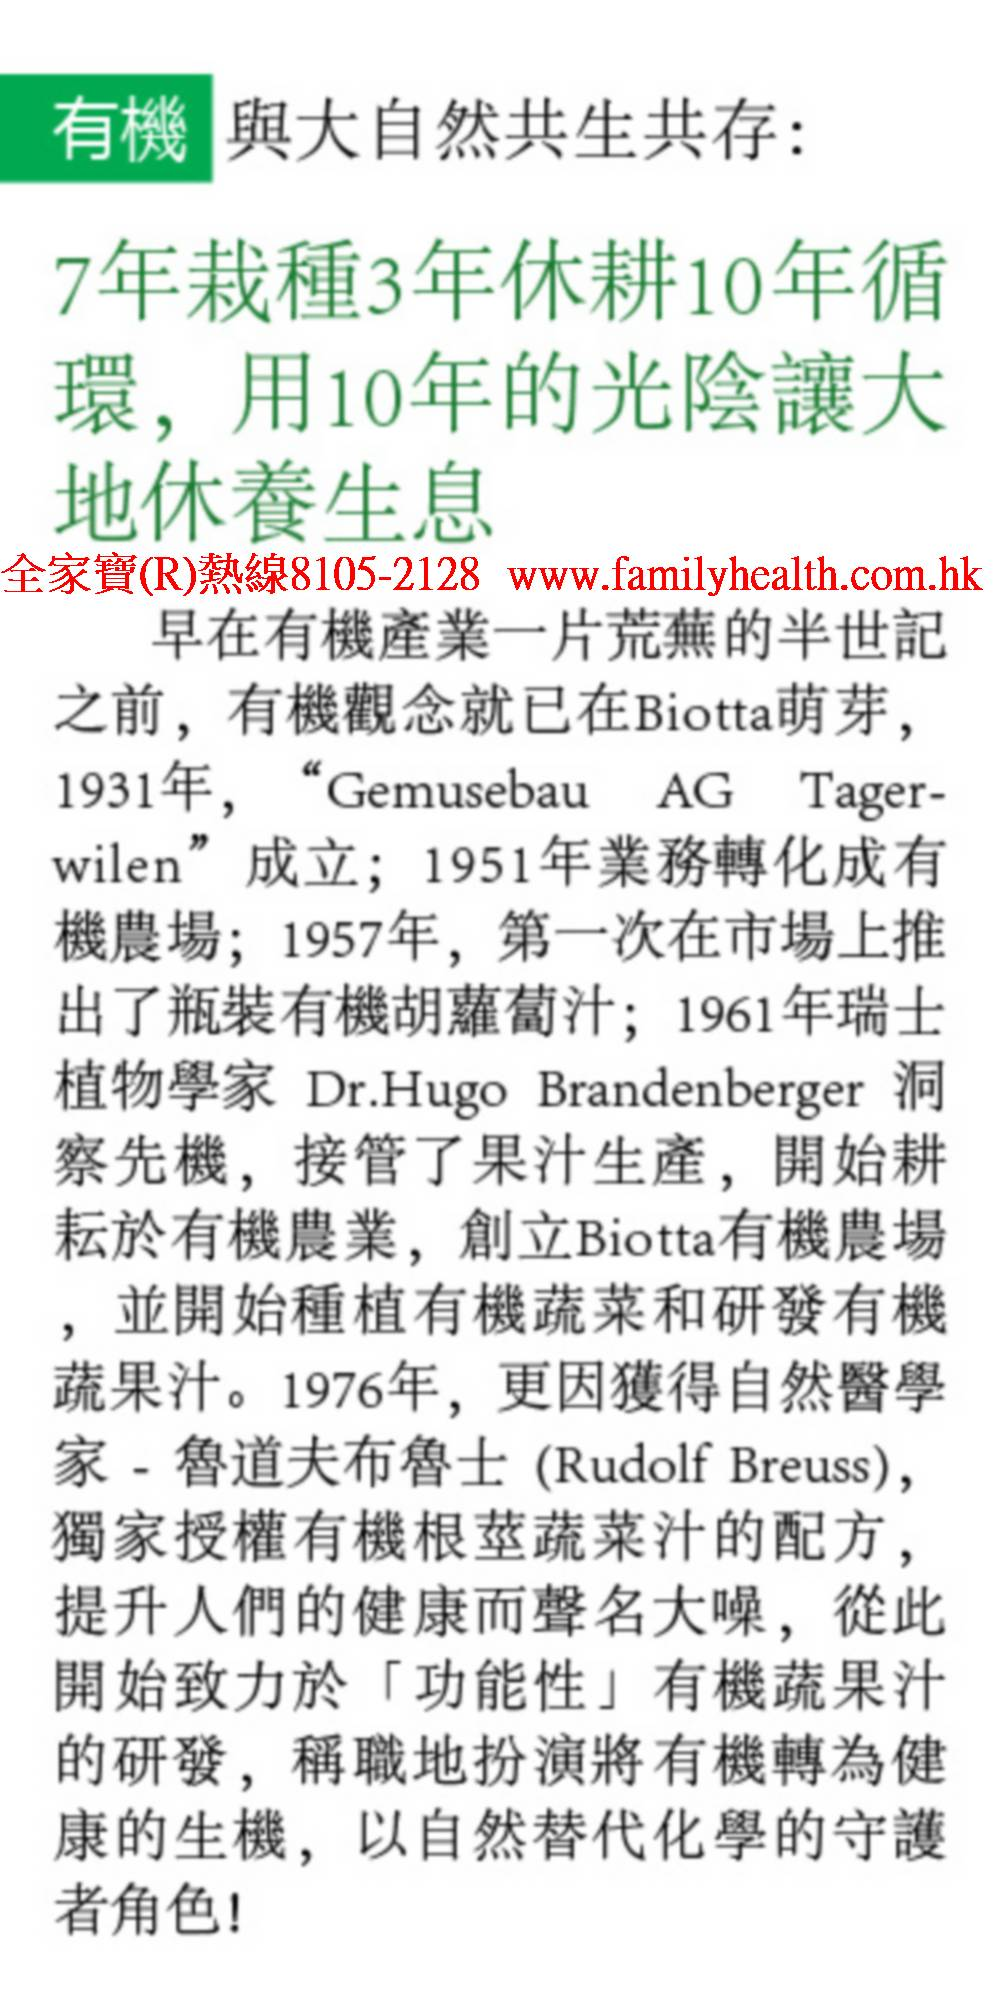 http://www.familyhealth.com.hk/files/full/944_2.jpg